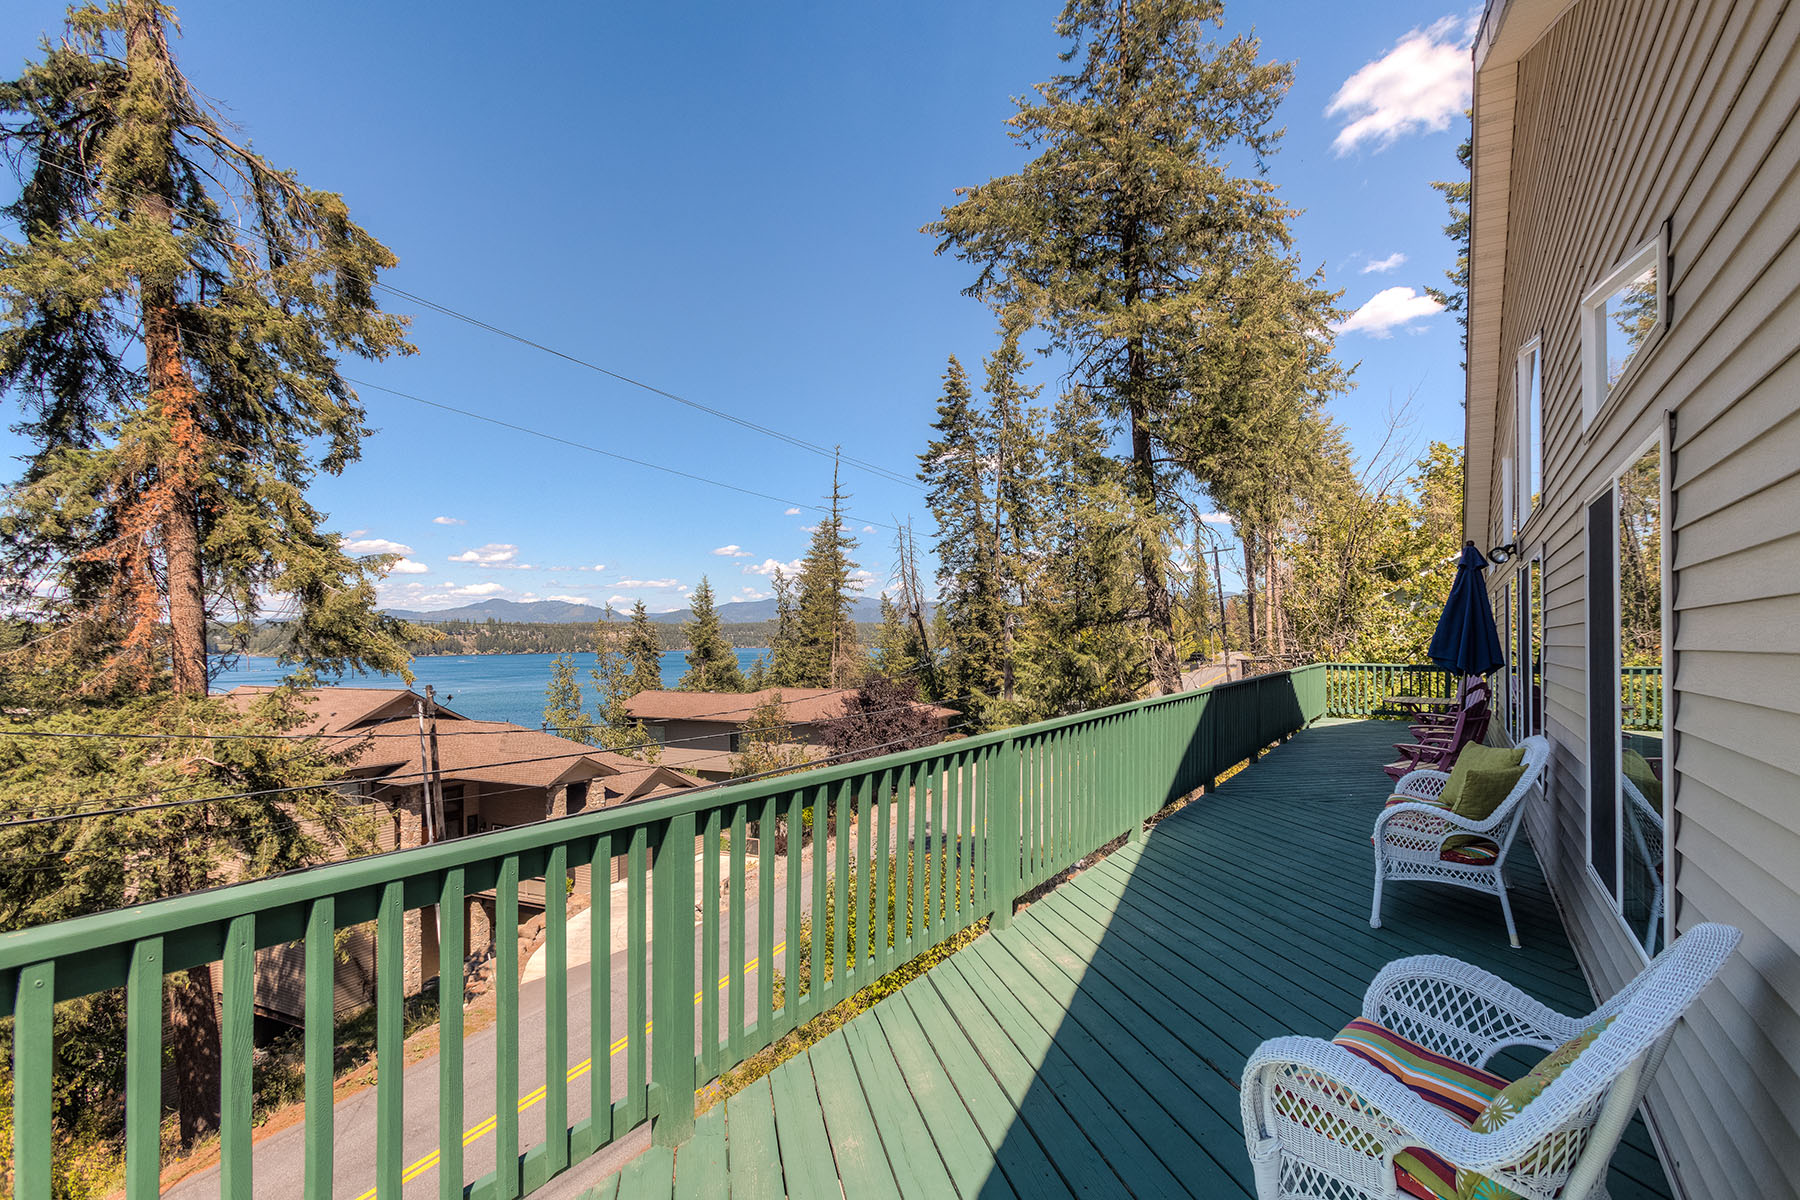 Single Family Home for Sale at Hayden Haven with Spectacular Lake Views 2238 E Upper Hayden Lake Rd Hayden, Idaho, 83835 United States